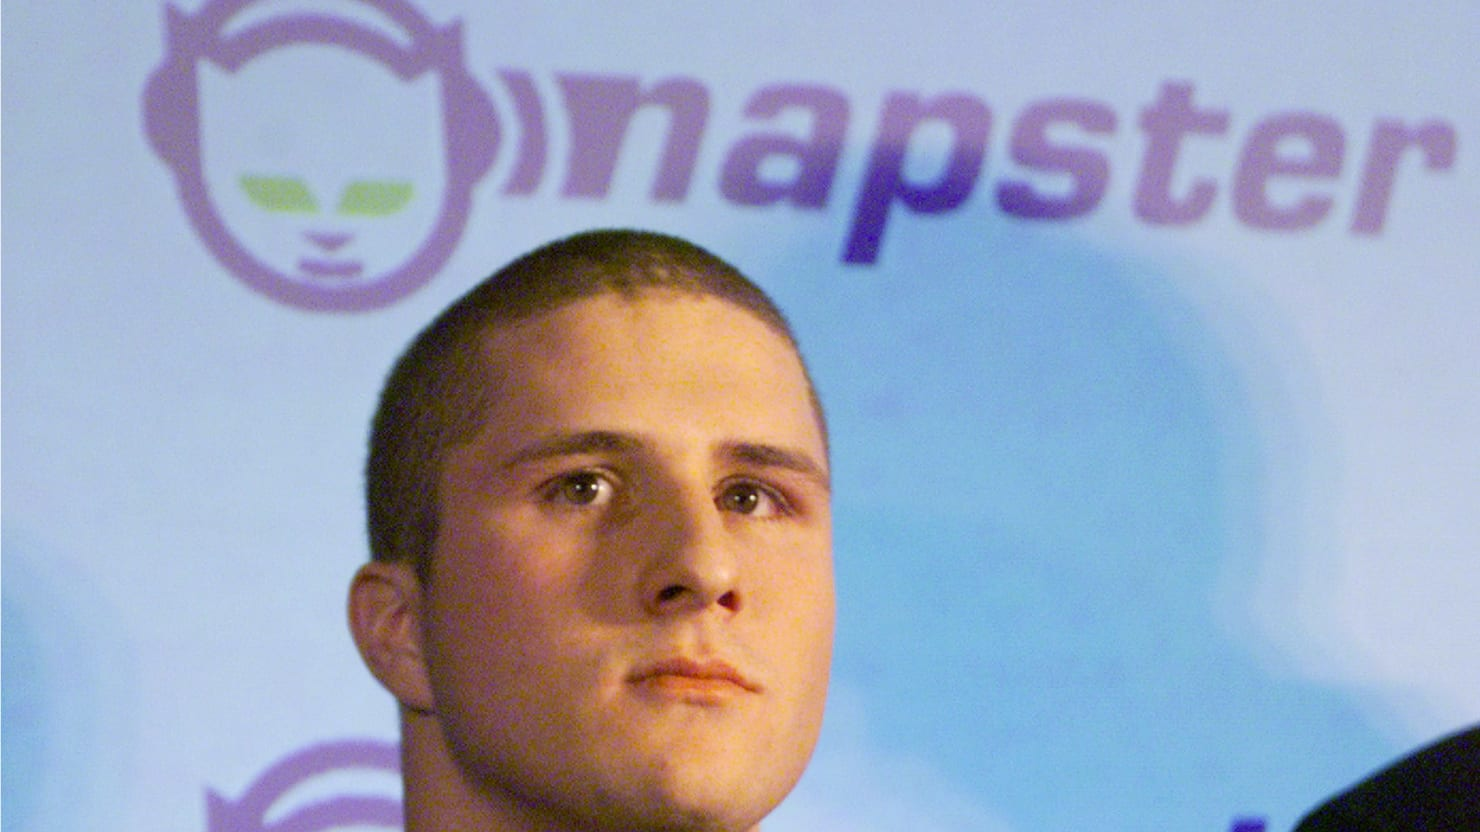 15 Years After Napster: How the Music Service Changed the Industry